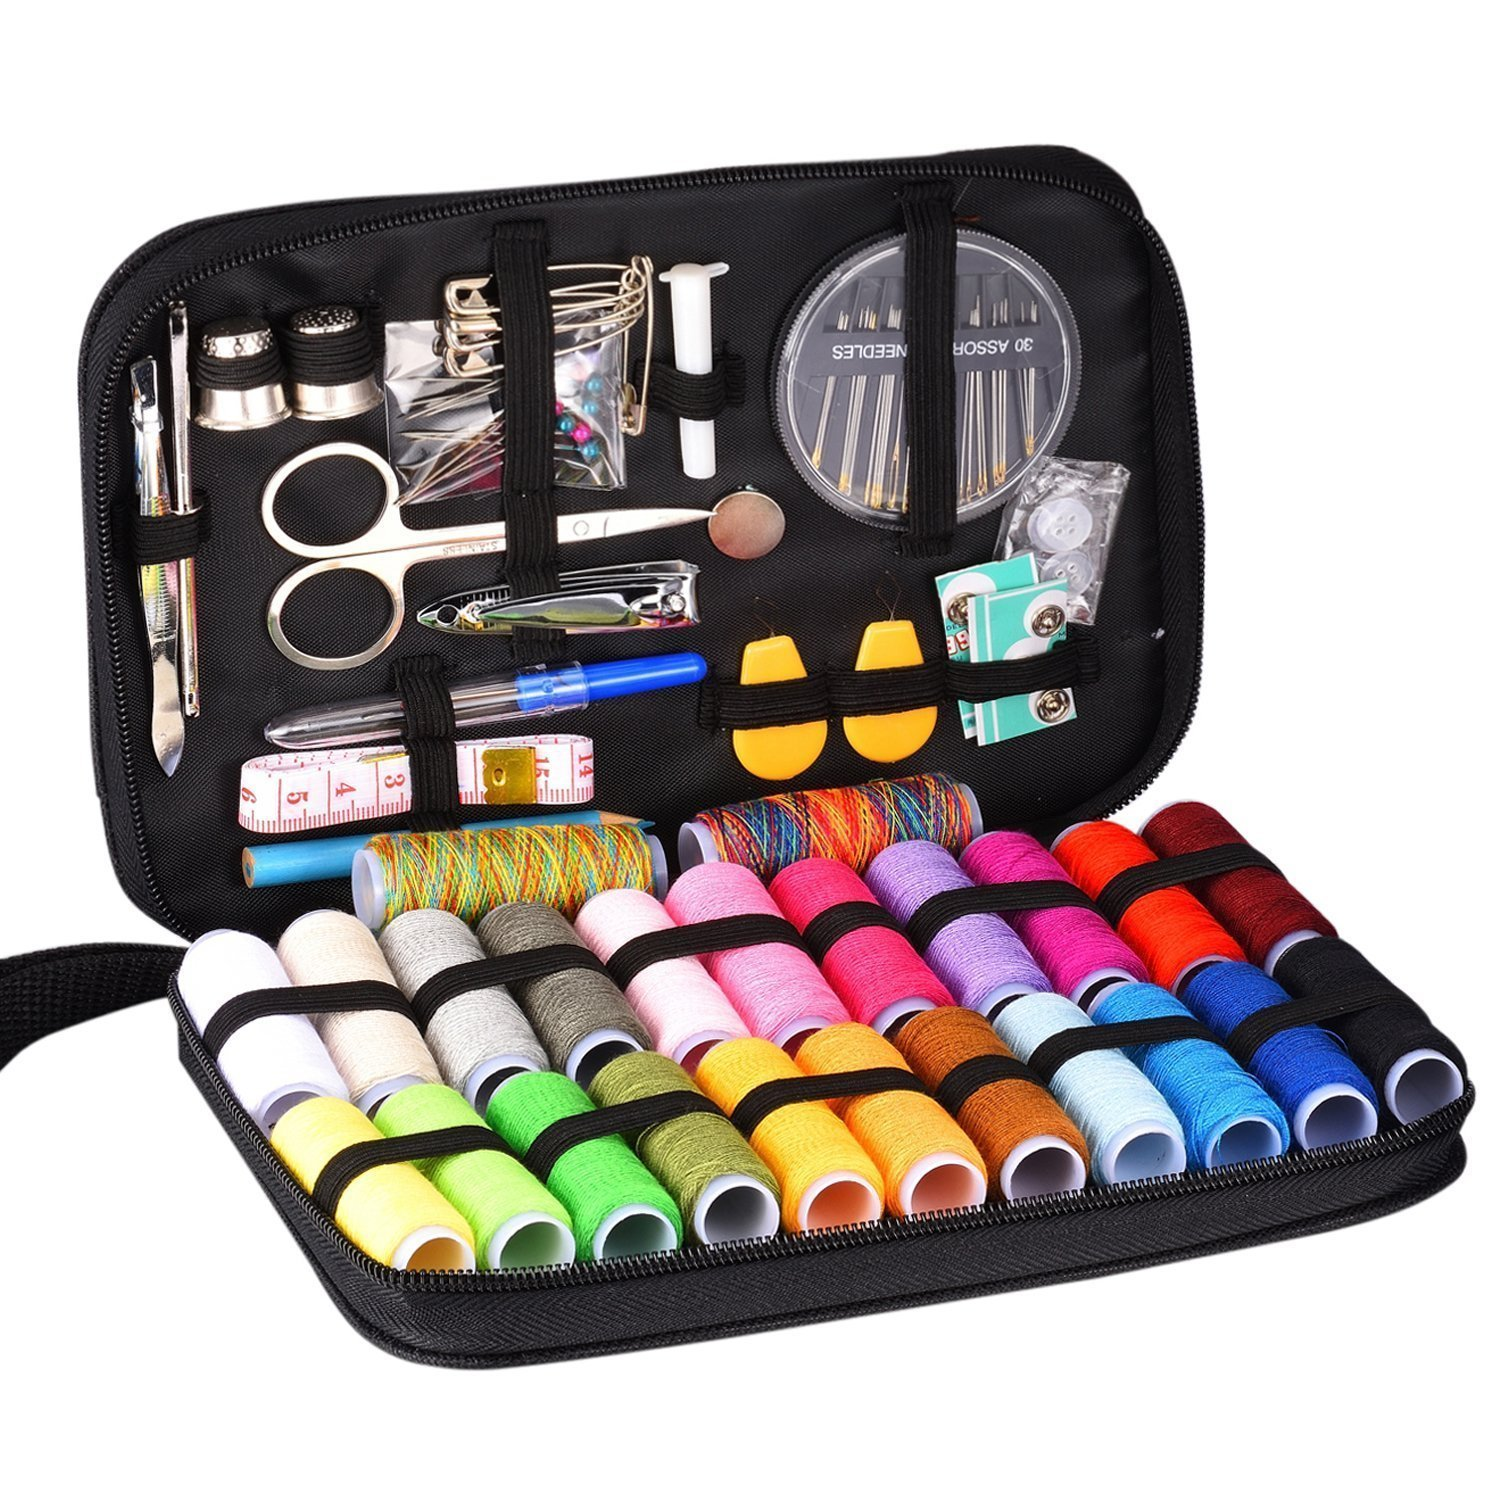 INNOCHEER Sewing Kit with 101 Sewing Accessories, 24 Spools of Thread -24 Color, Mini Sewing Kits for Beginners,Traveller, Emergency, Whole Family to Mend and Repair (Flower) Newever 4336935631